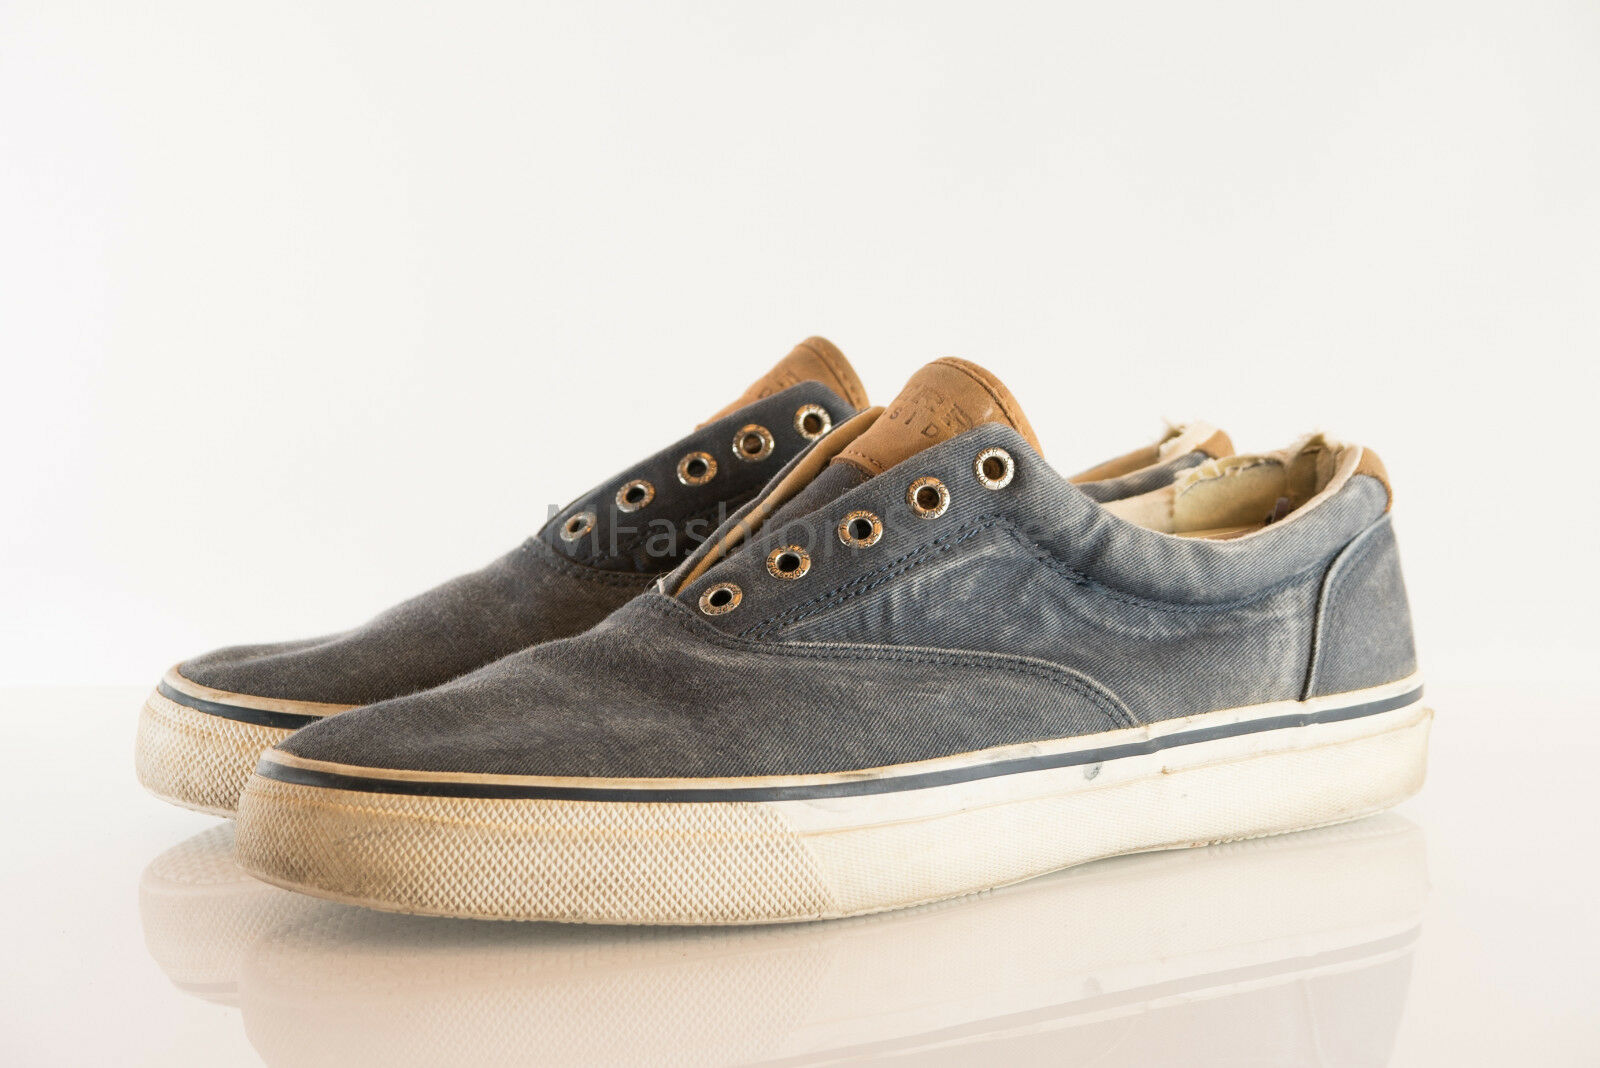 Sperry Blue Cotton Upper A14-61432 Mens Shoe Size US 12M Pre Pre 12M Owned Has some rips 55e168